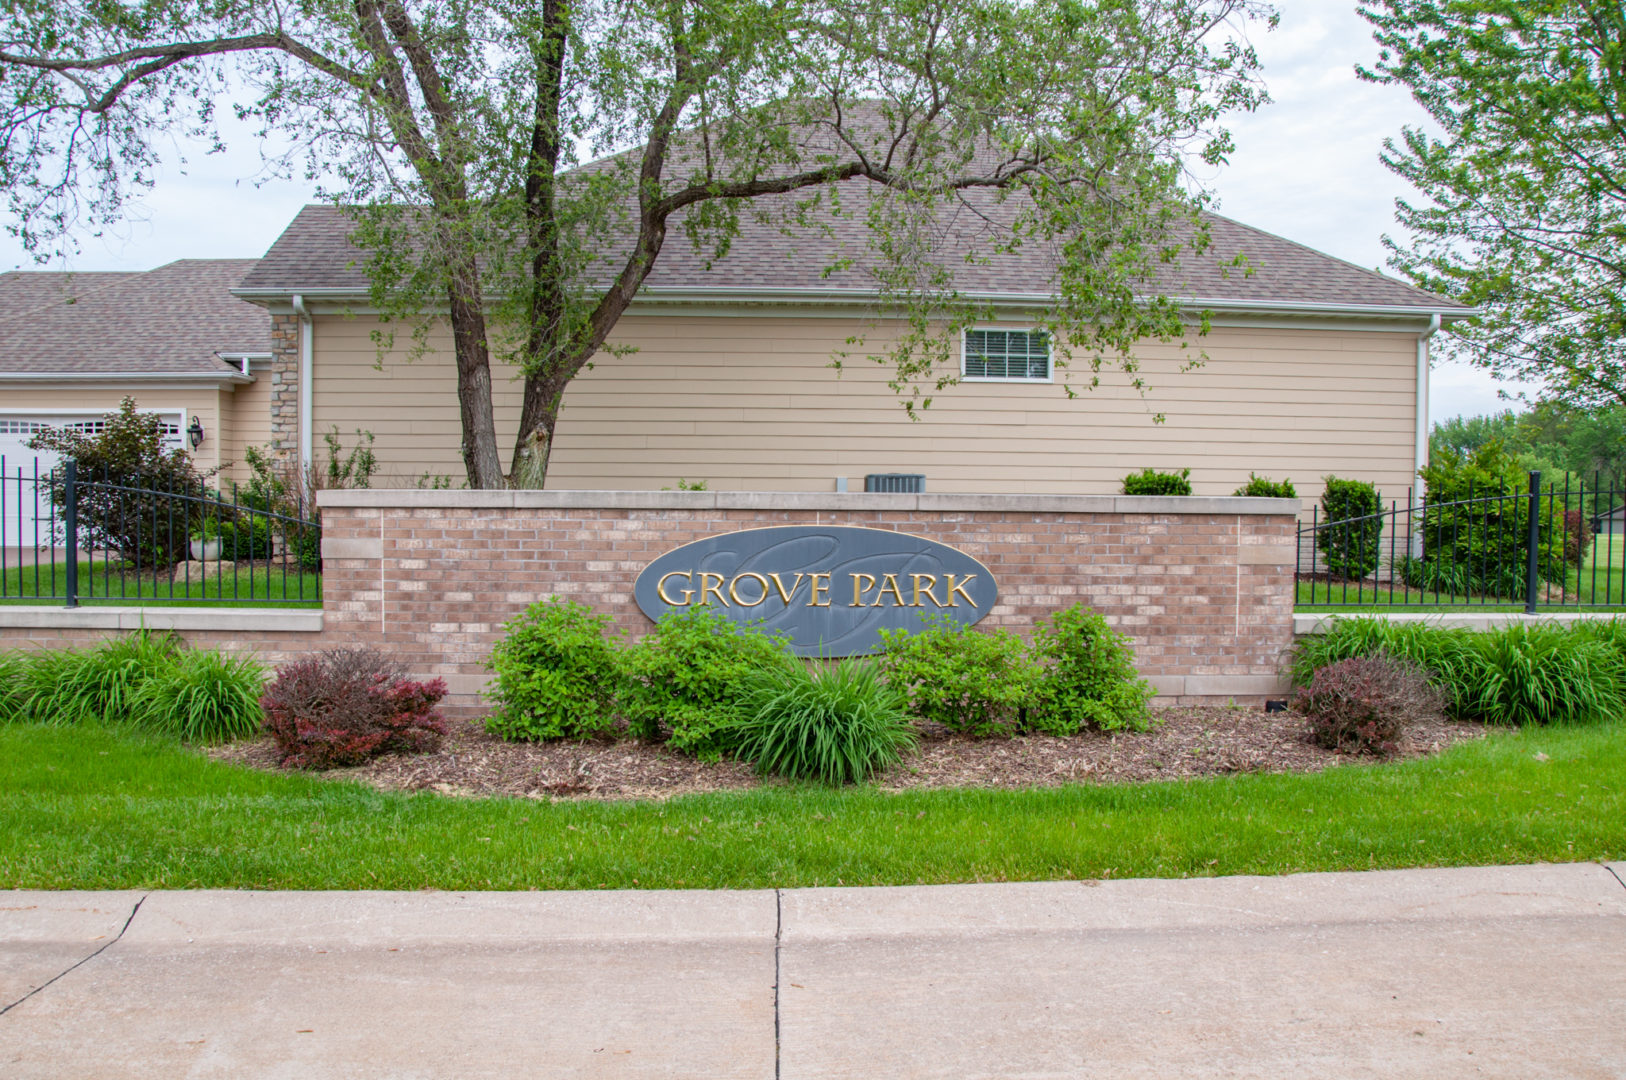 Grove Park at Crow Valley